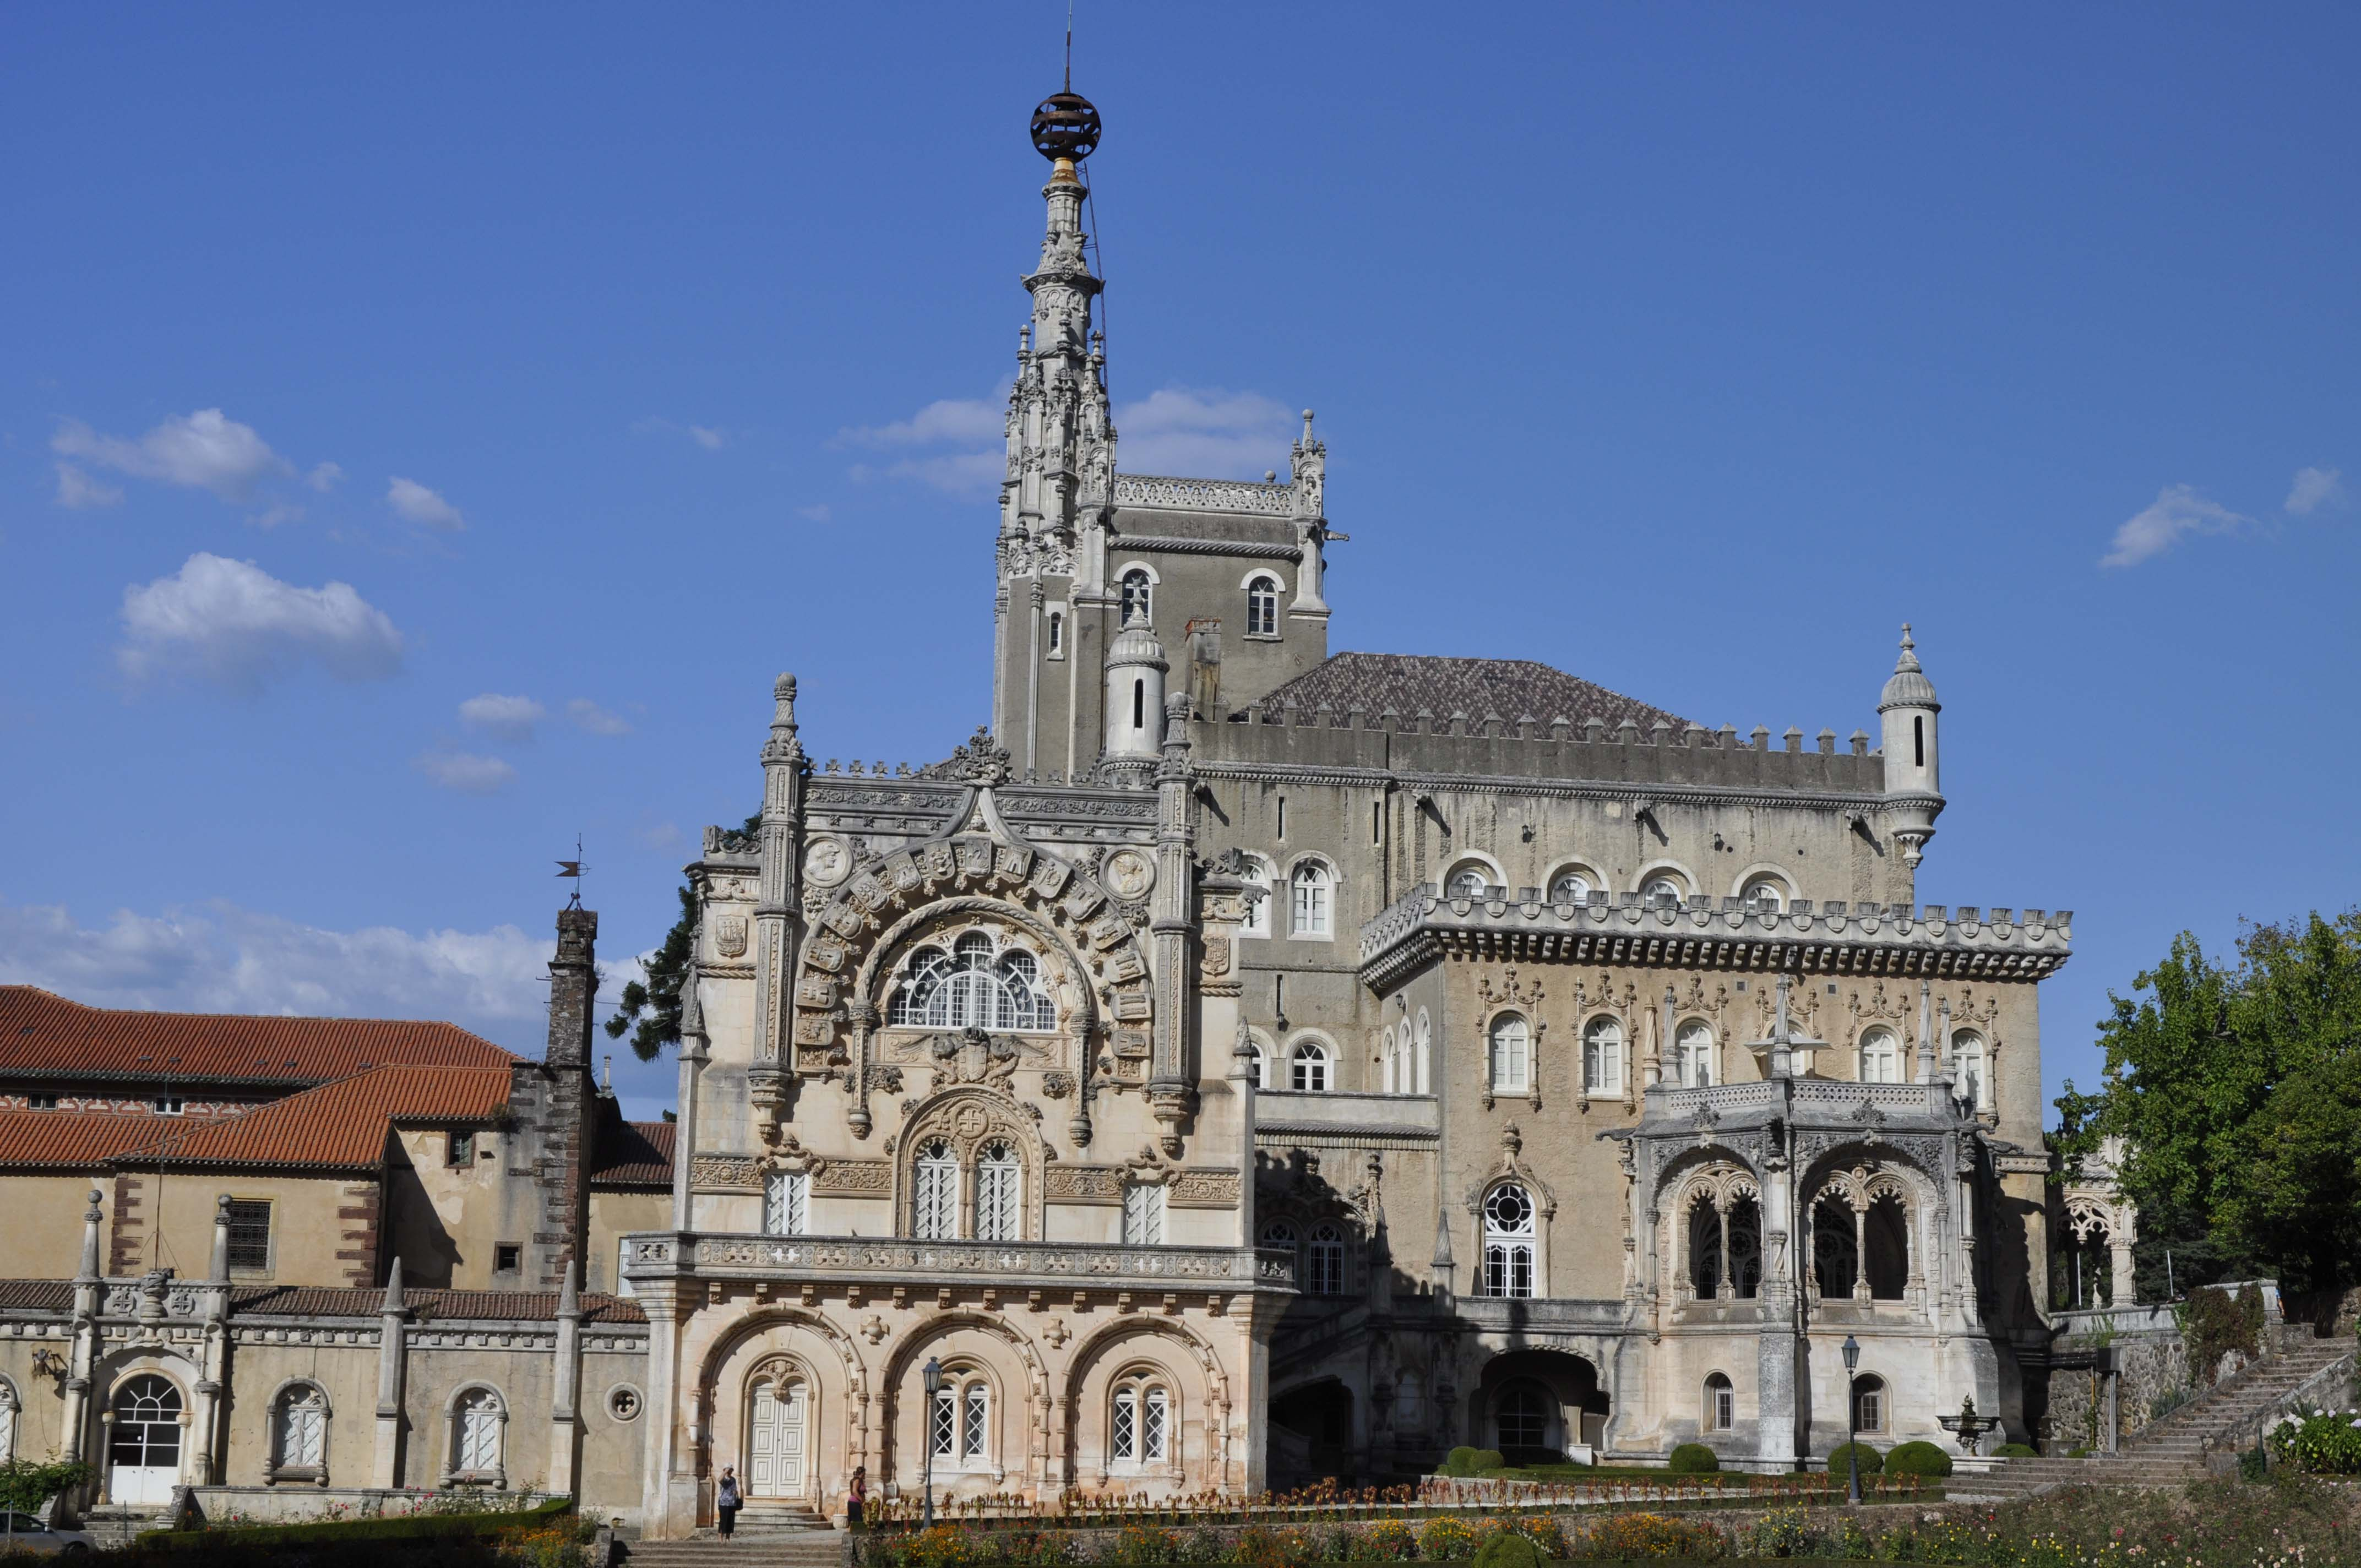 The hunting Lodge built for the last kings: Bussaco.